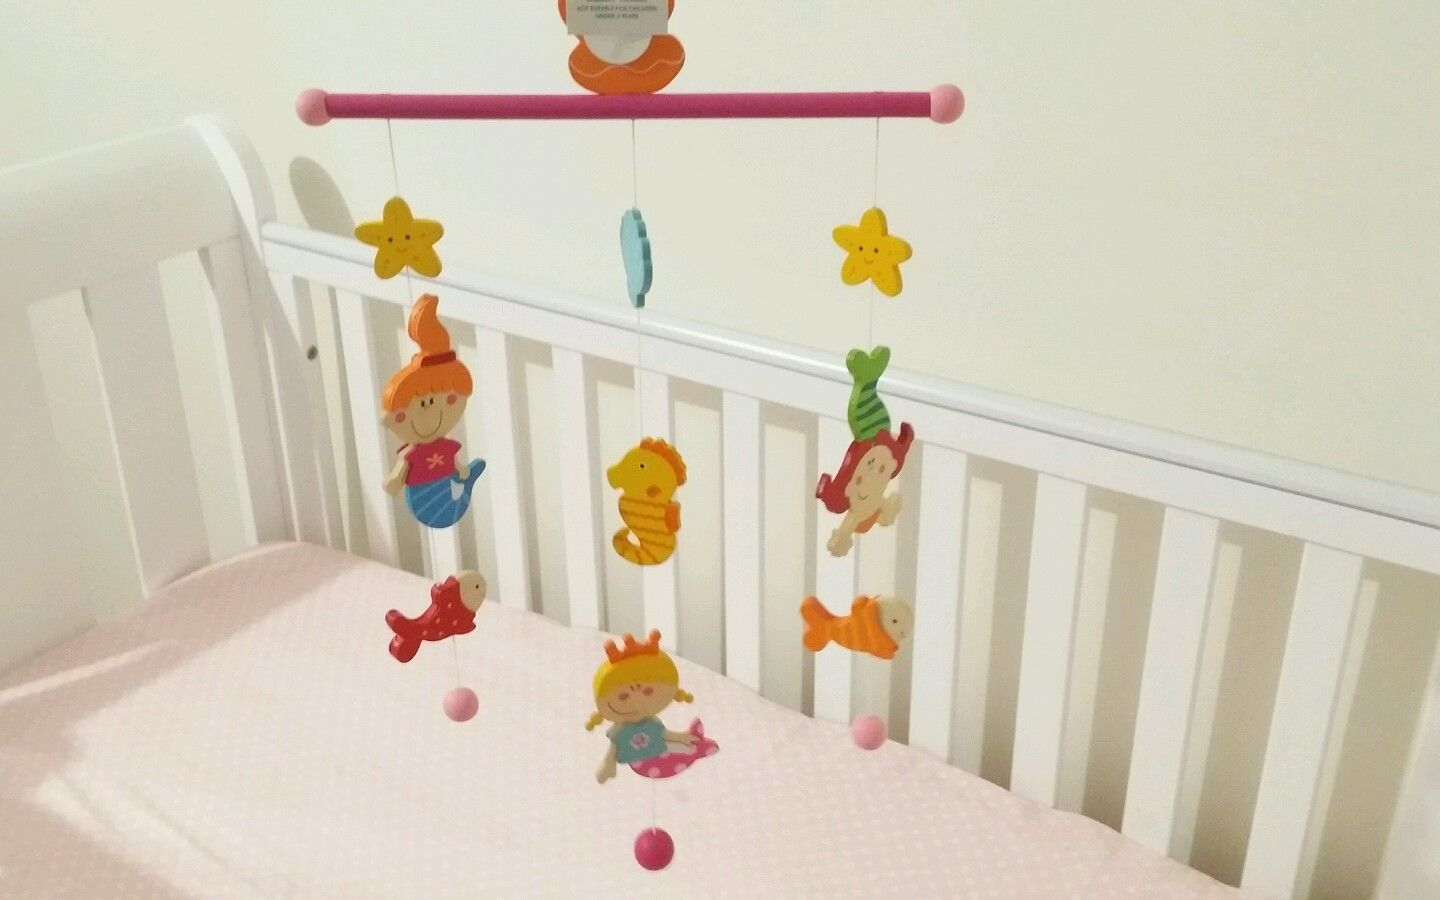 Wooden Baby Mobile Wooden Baby Mobile For Cot Crib Nursery Decor 43baby